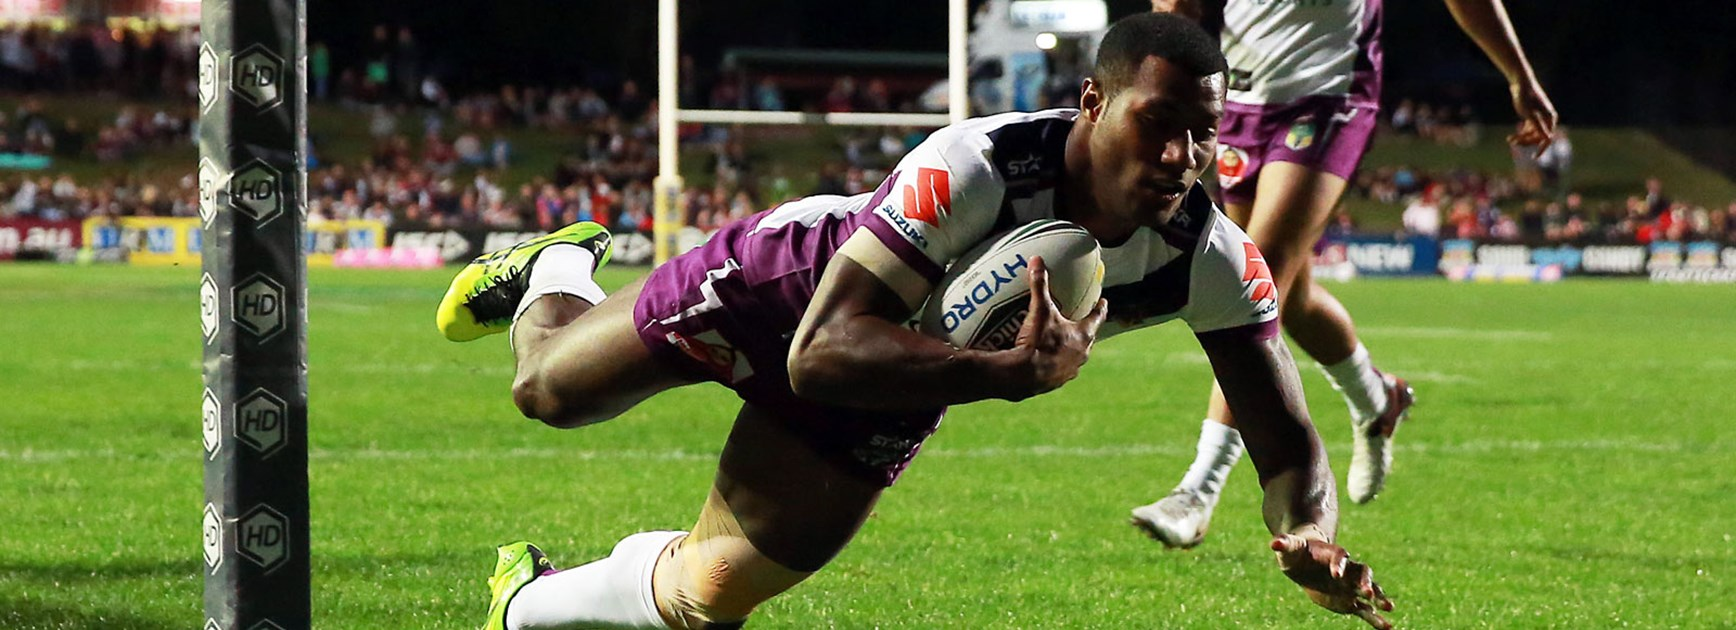 Suliasi Vunivalu scoring one of his four tries against the Sea Eagles in Round 24.